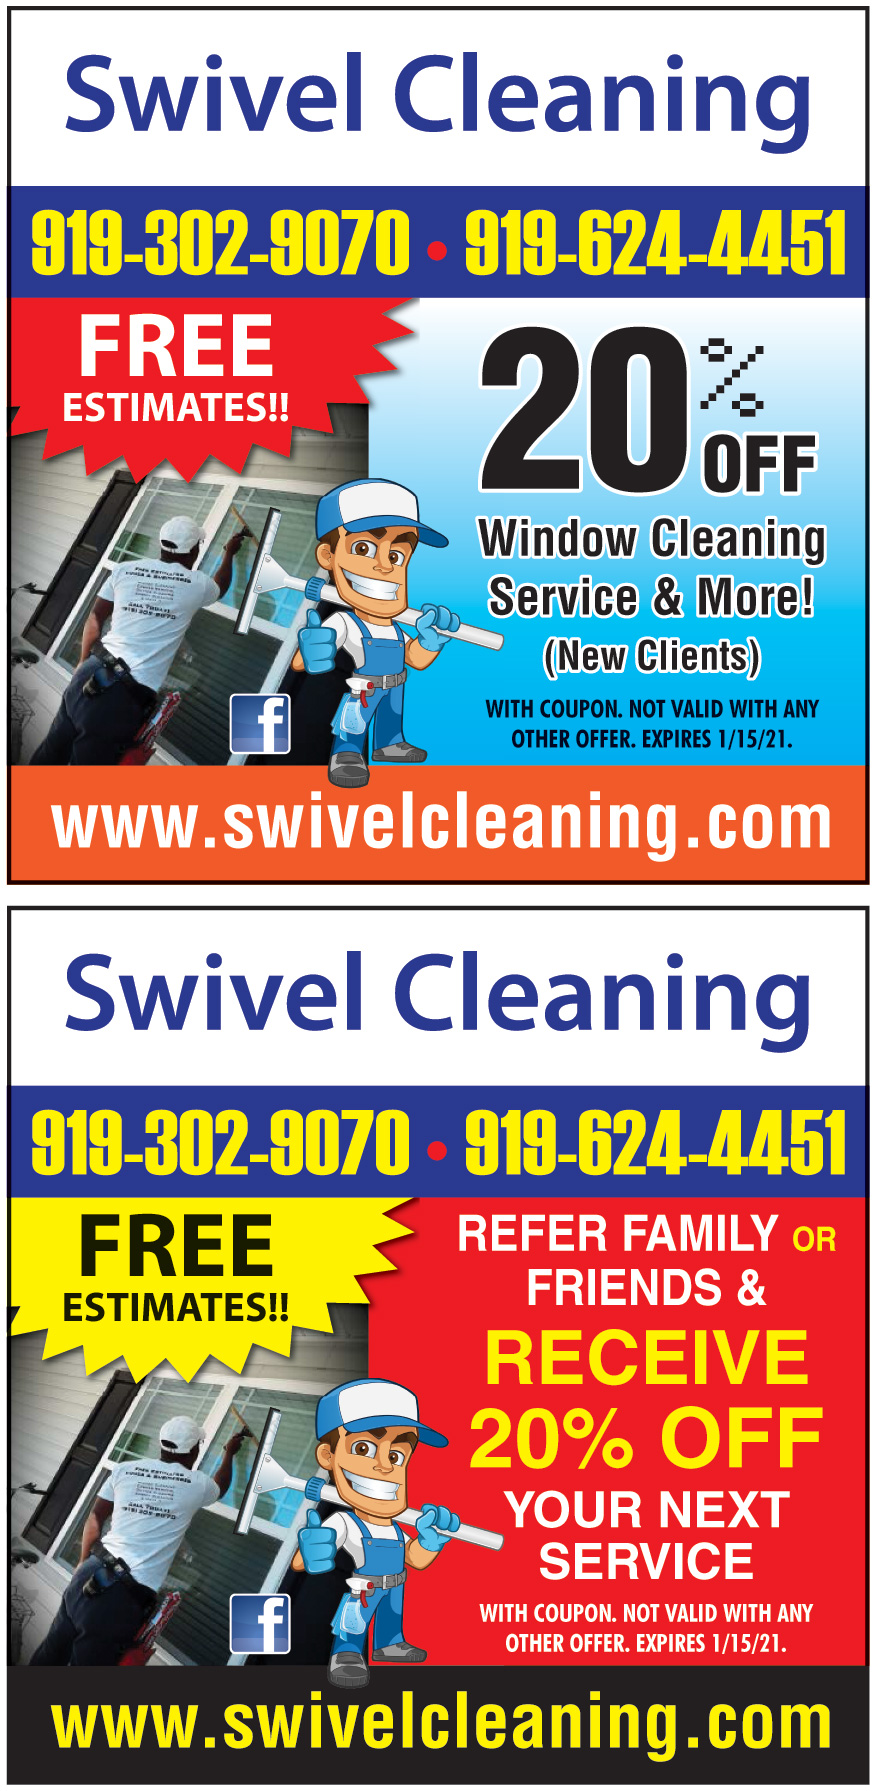 SWIVEL CLEANING